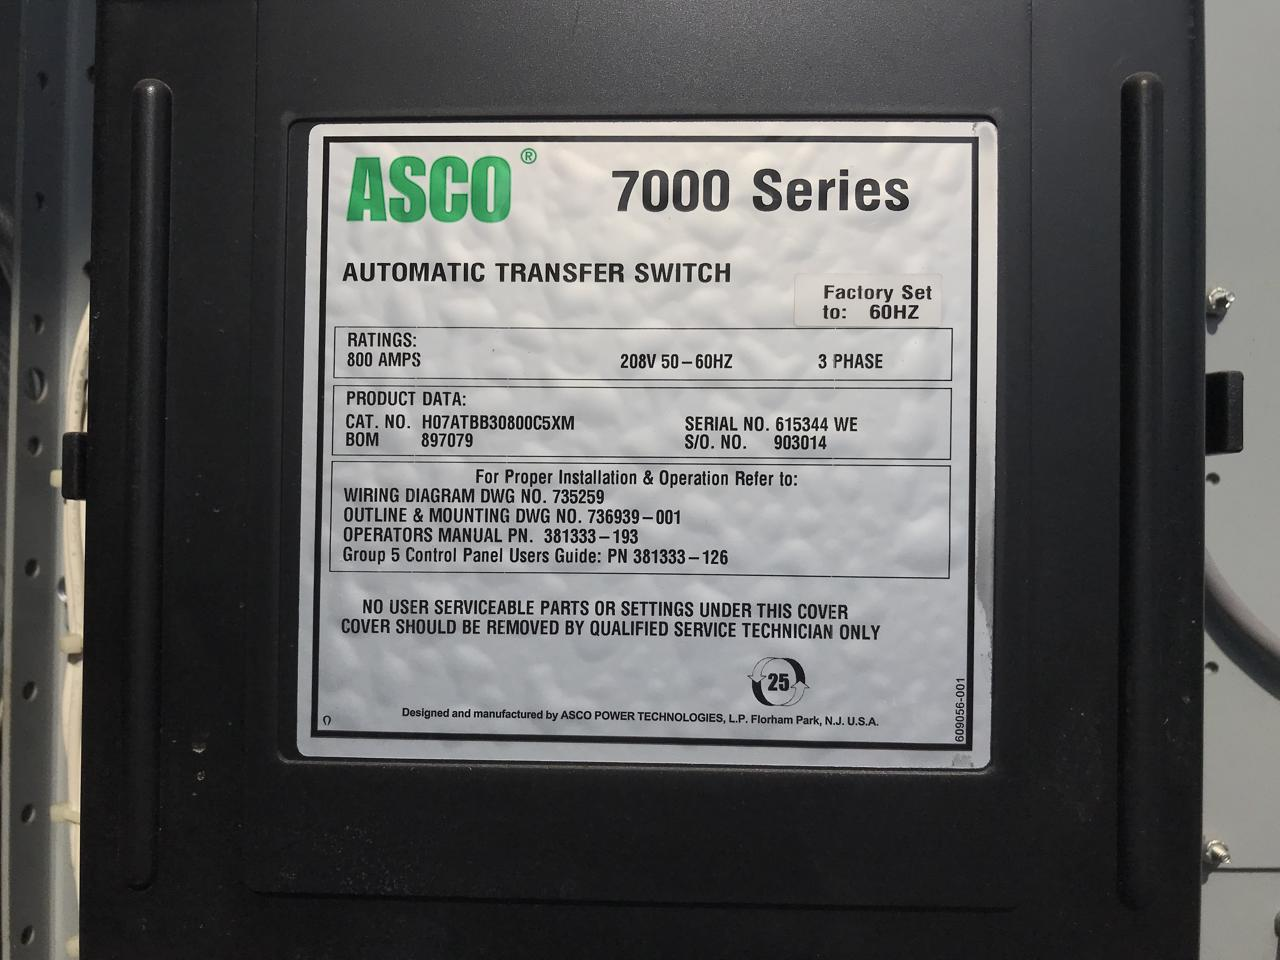 1600 Amp Service Entrance Diagram Detailed Schematics Electrical Wiring 800 Asco Nema 3 Transfer Switch Rated